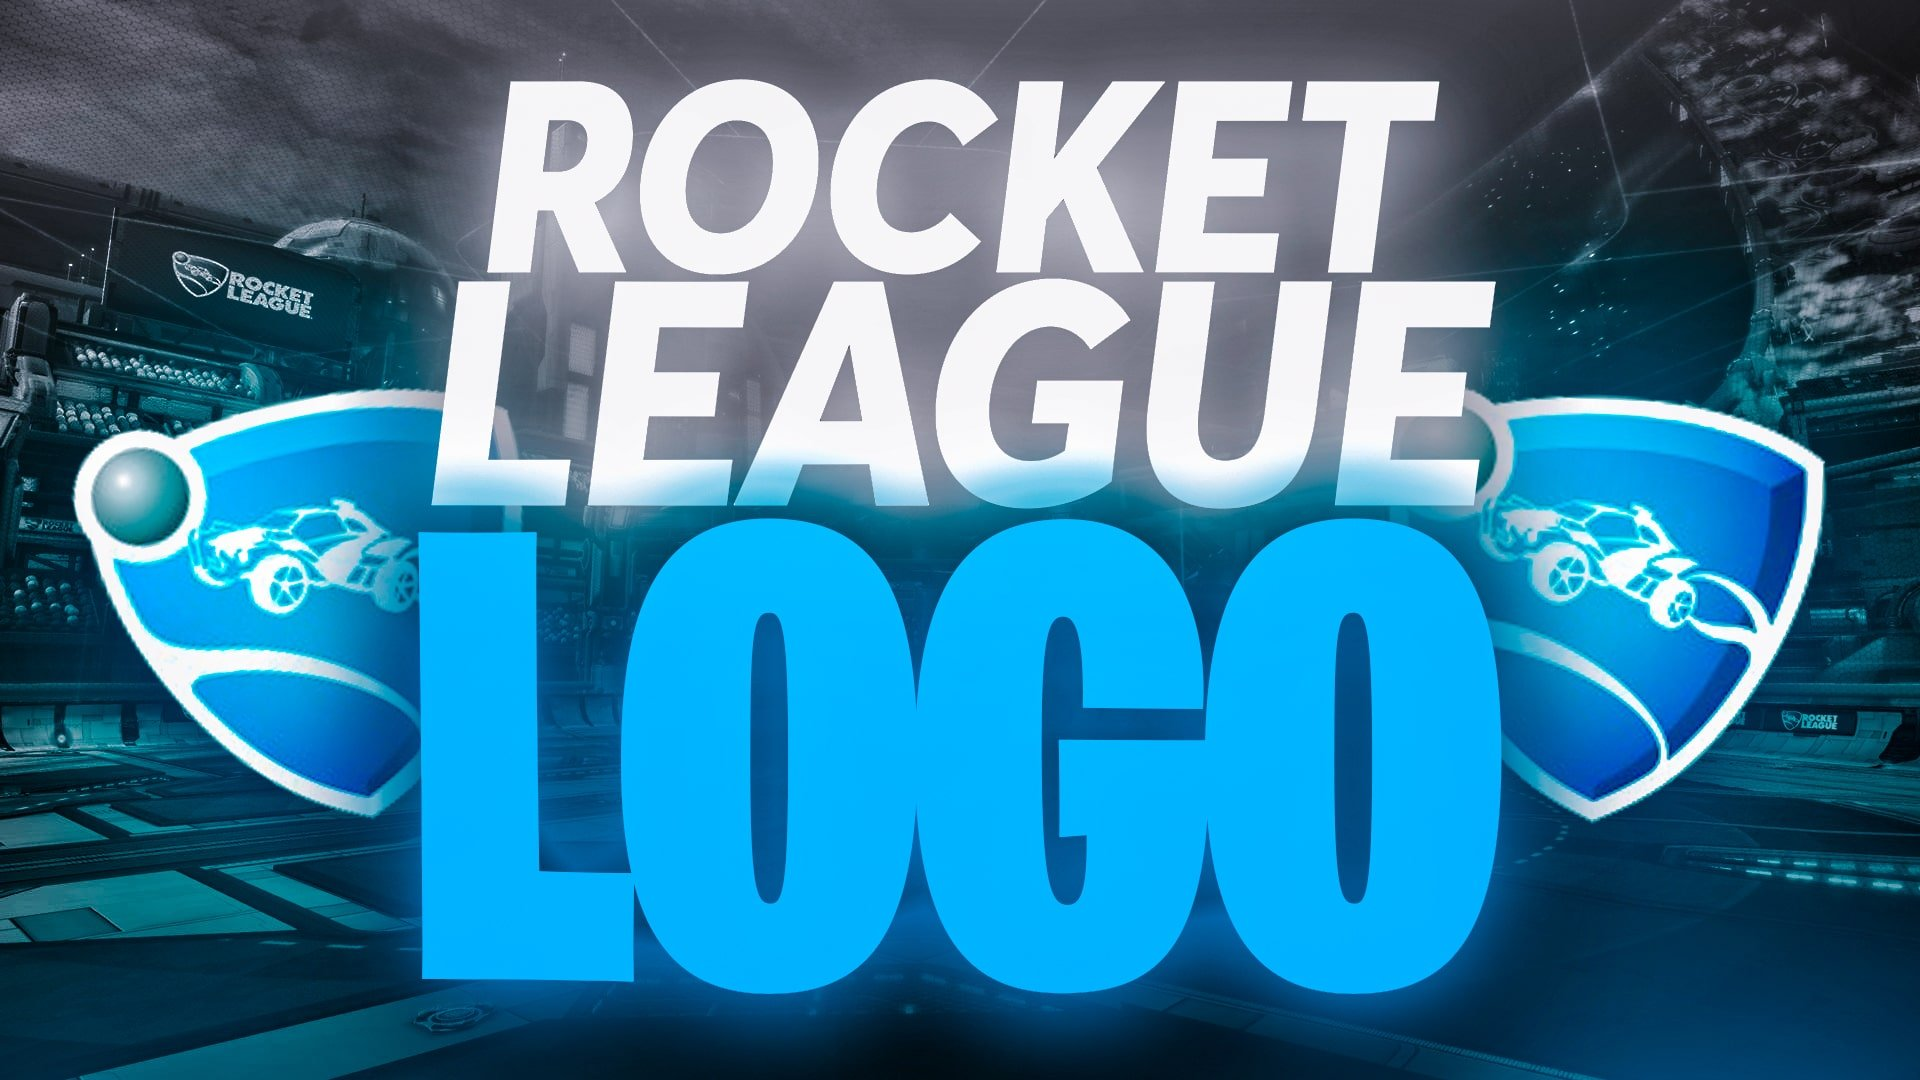 Rocket League Logo with Download